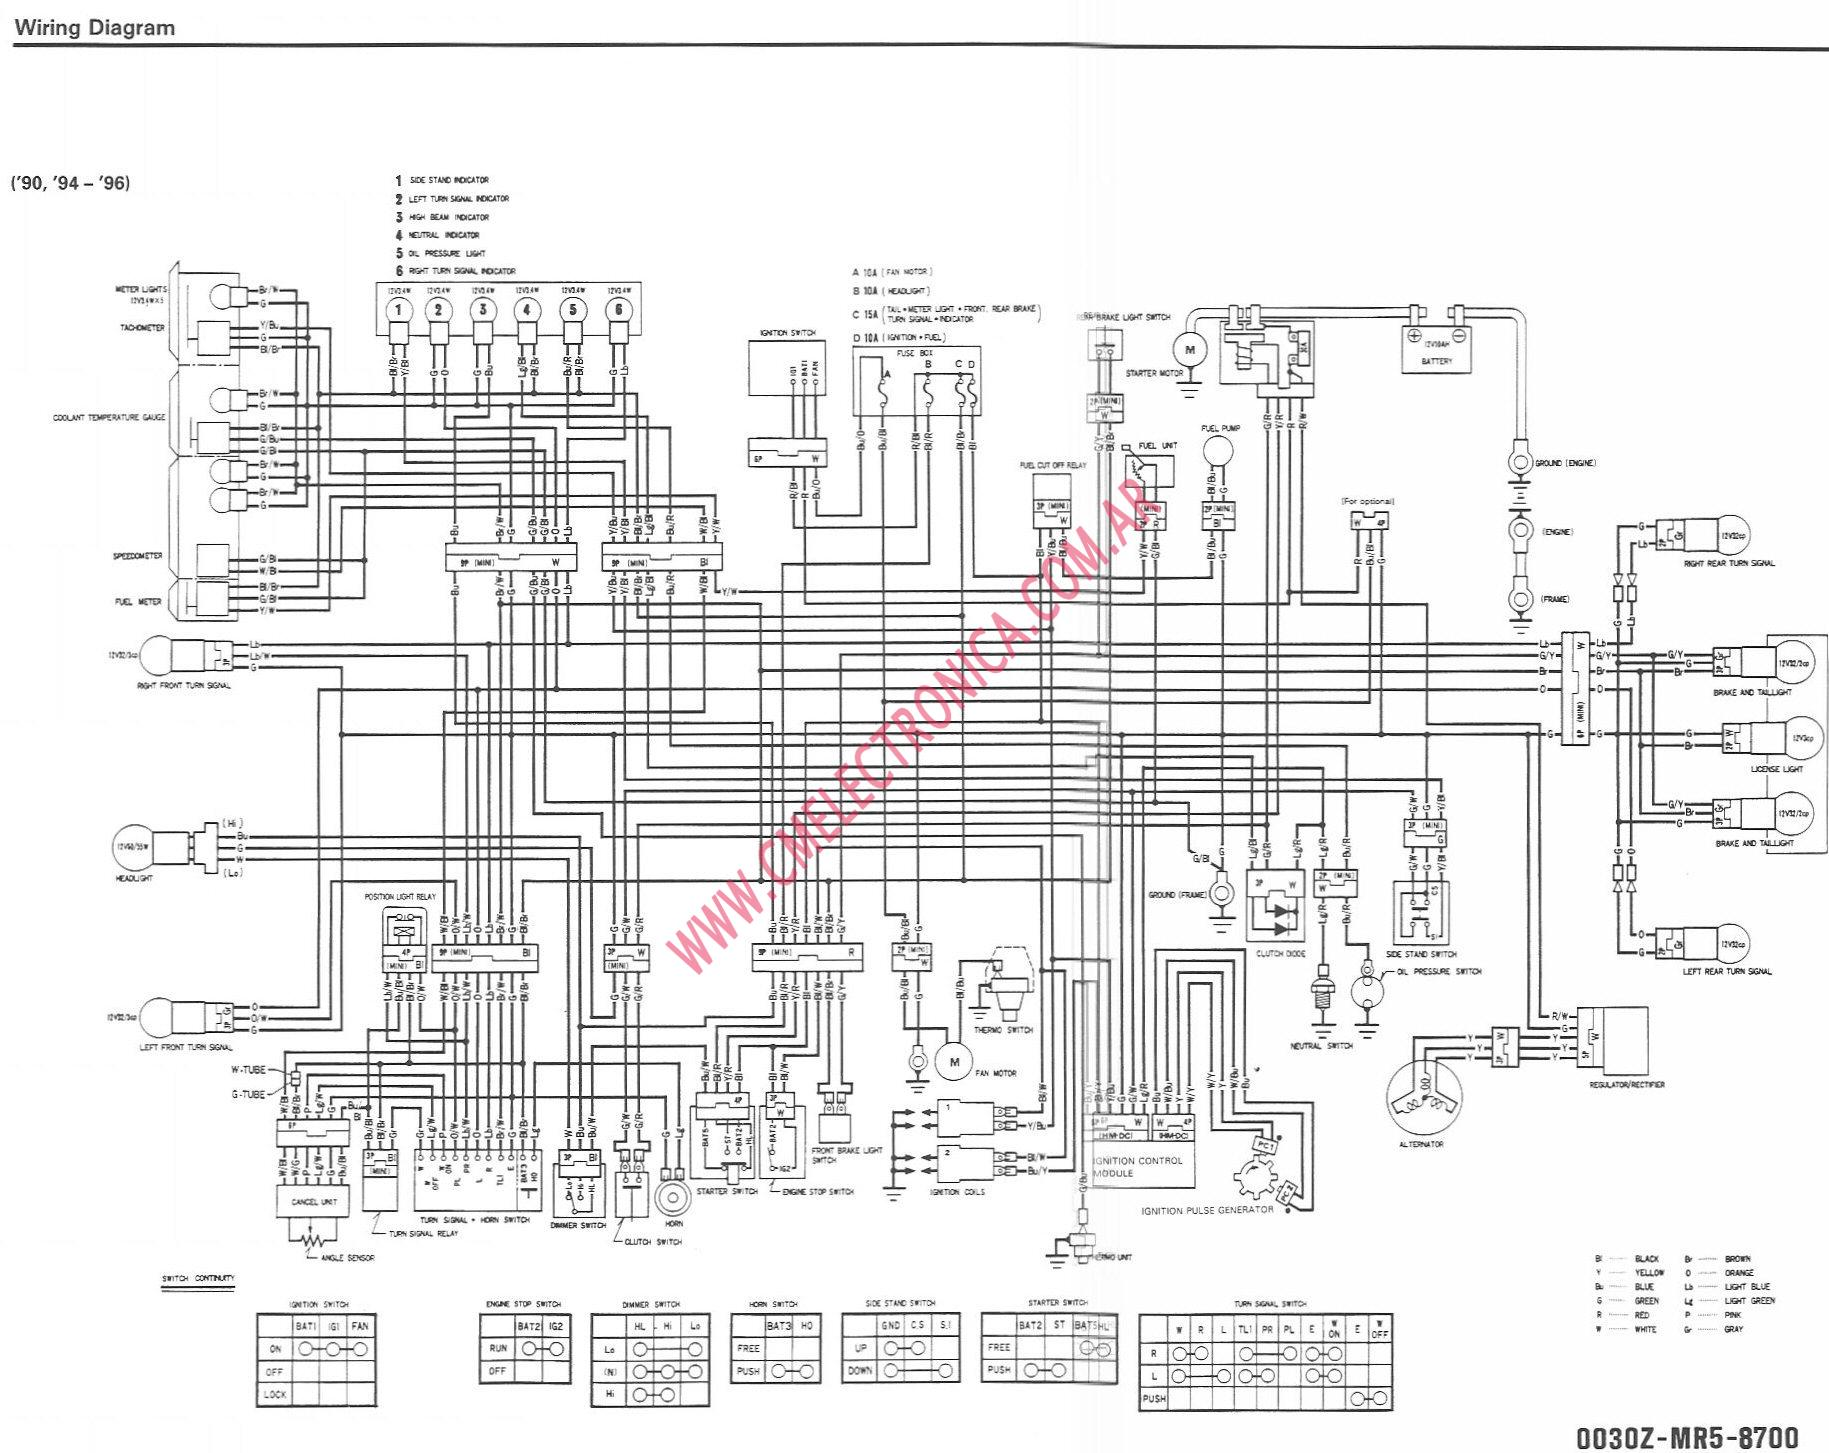 odes 800 utv wiring diagram online schematic diagram u2022 rh holyoak co odes dominator wiring diagrams odes dominator wiring diagram